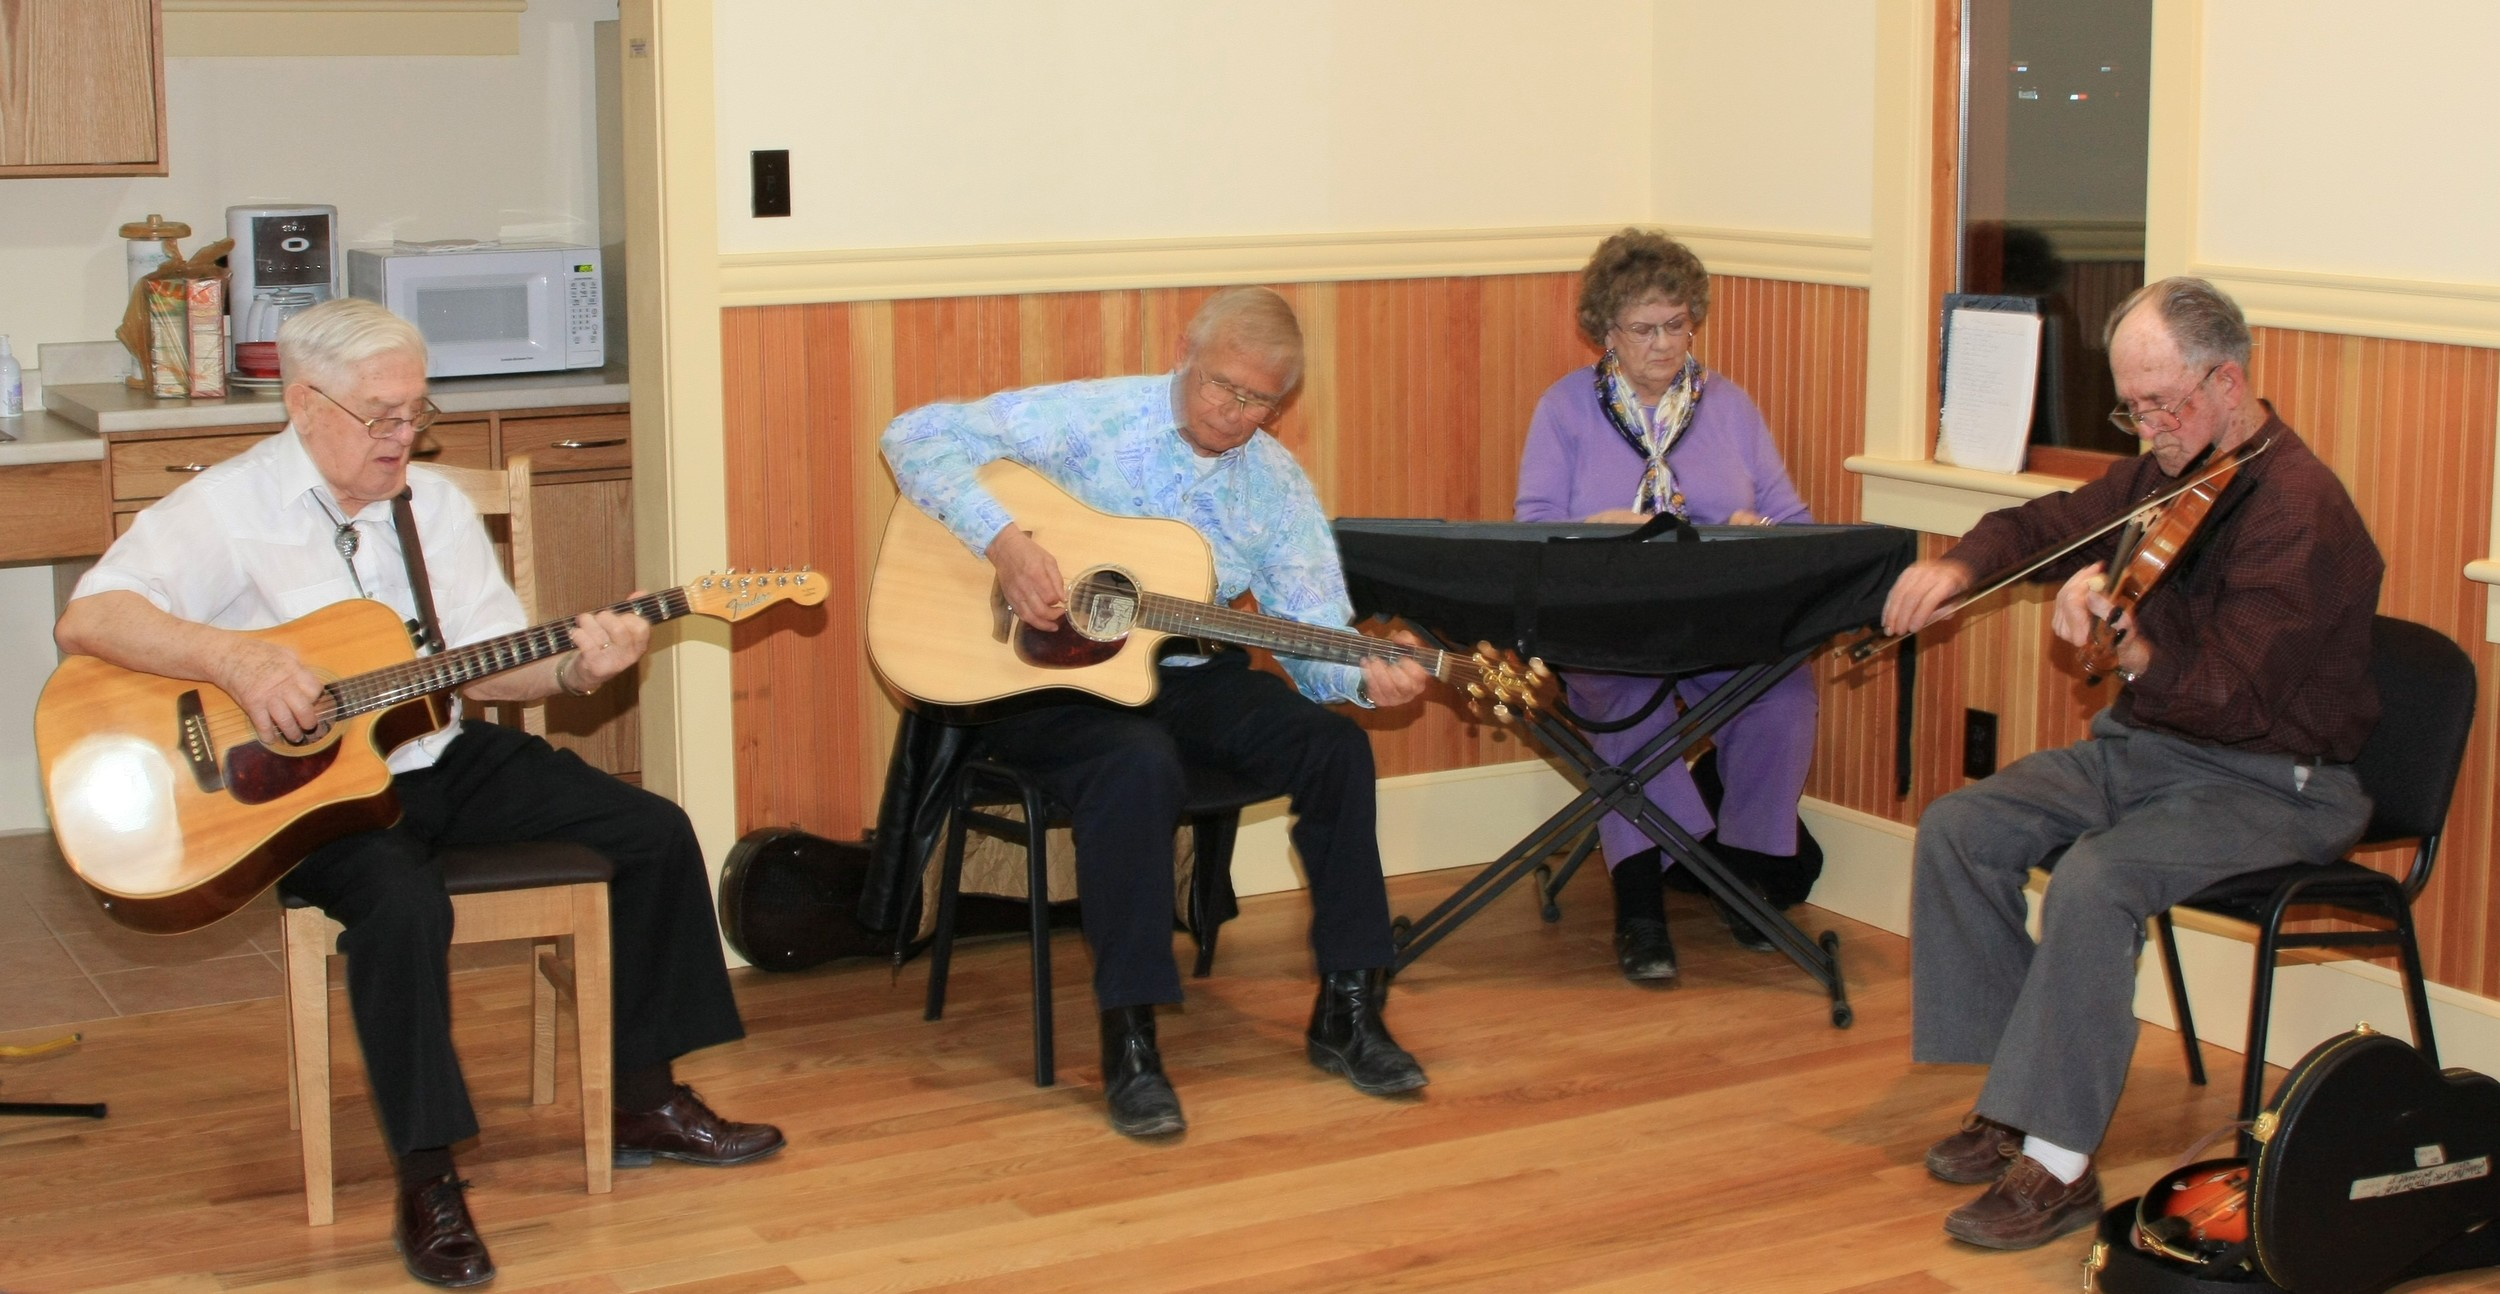 John MacIver, old -time fiddler (at right) is joined by Shorty Boulet, Gary Young, and Helen Sargent.